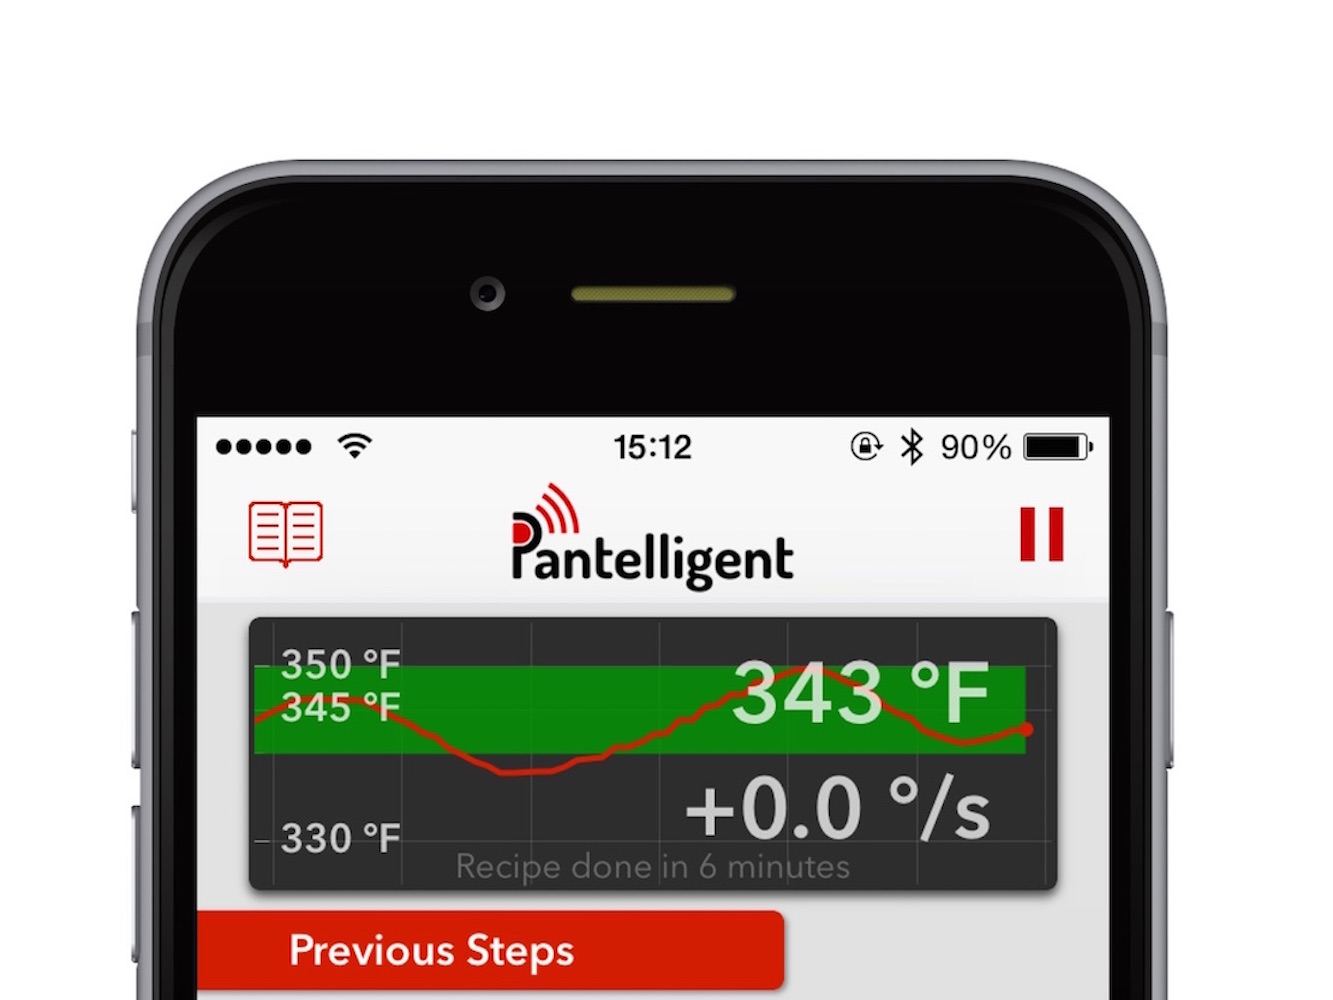 Pantelligent – Smart Frying Pan